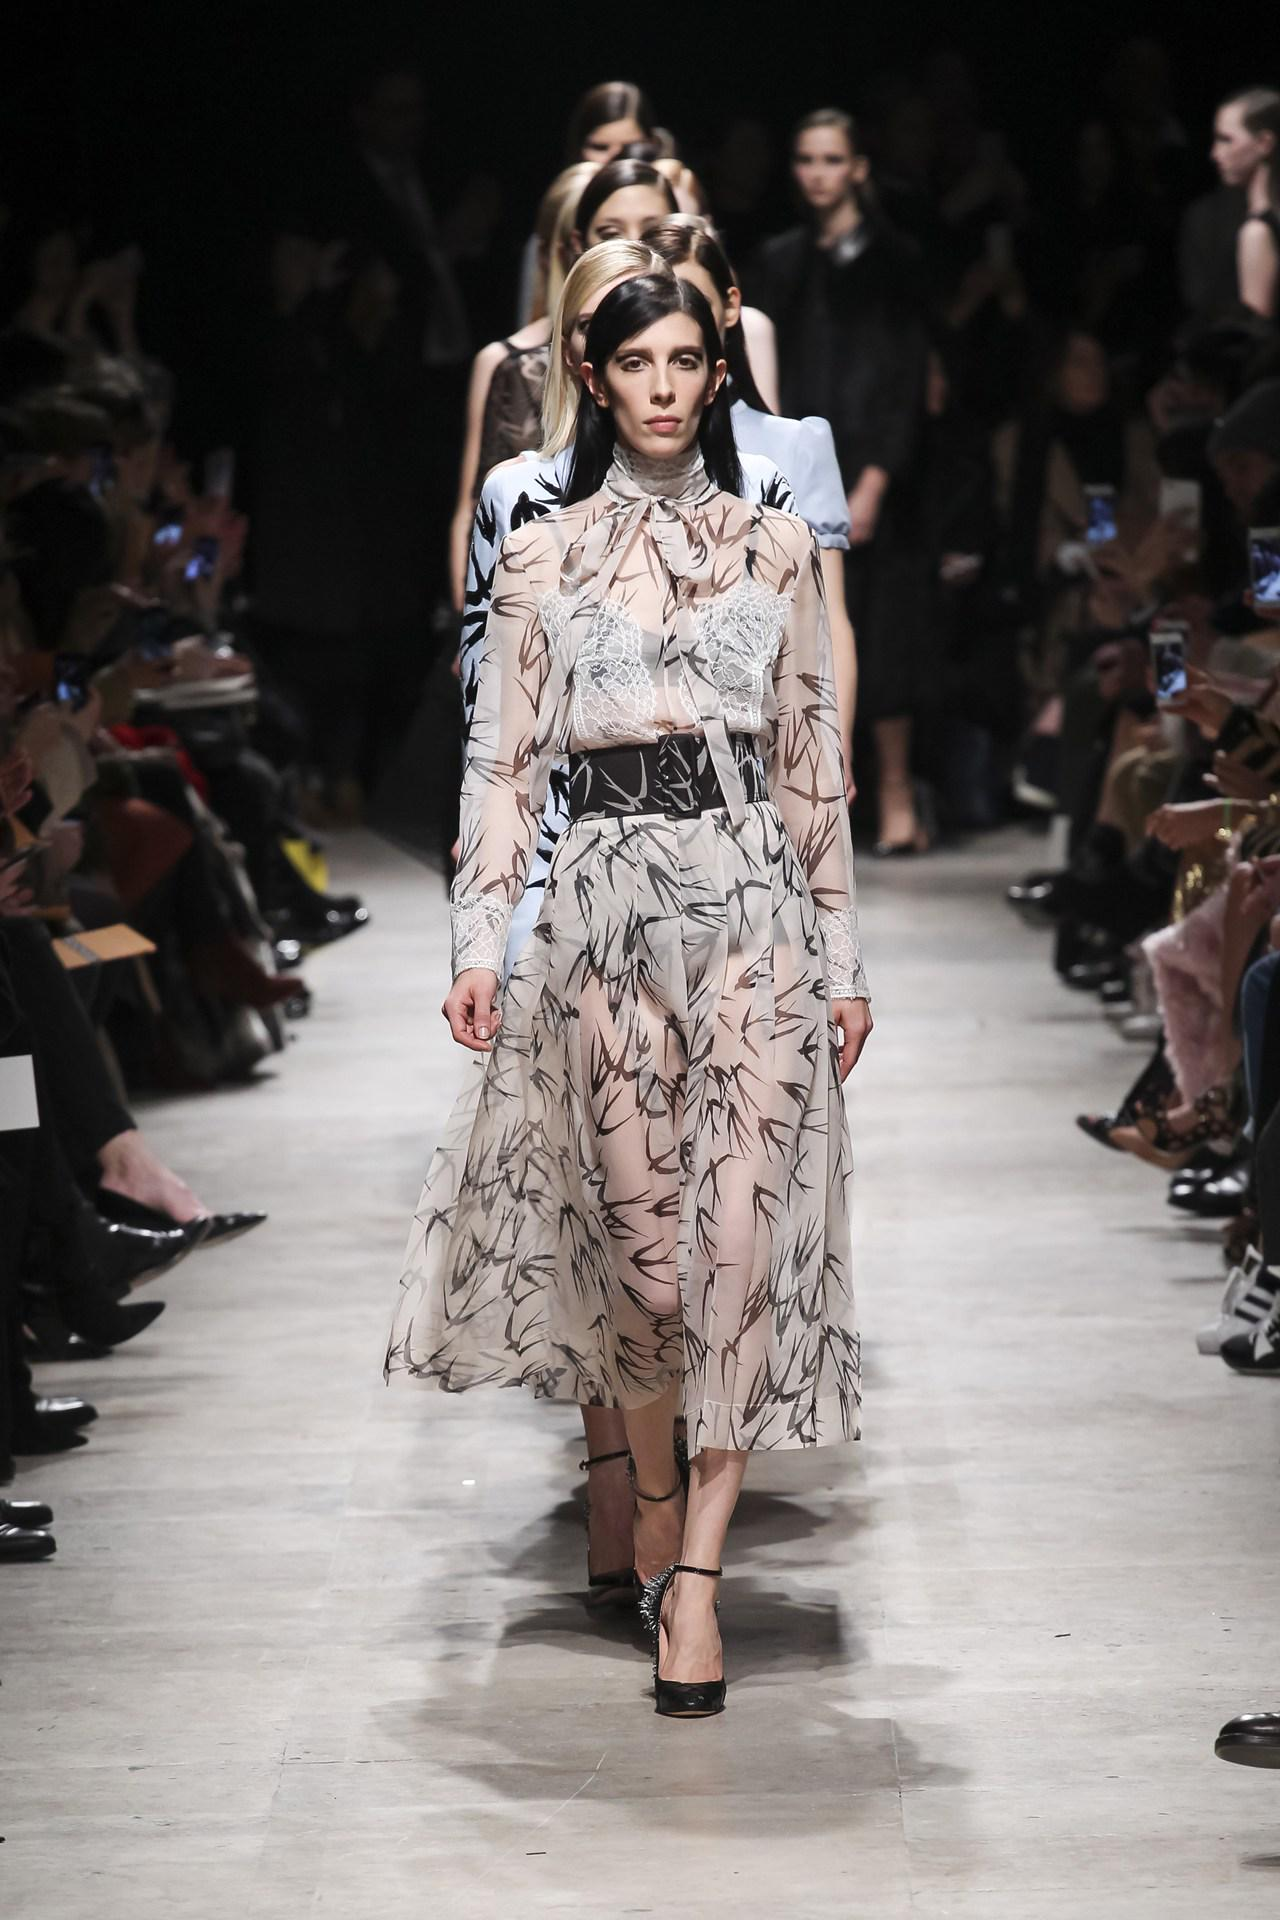 See last night's Rochas show from every angle: http://t.co/H3hF6weqfZ #pfw #aw15 http://t.co/7r7pUKLobM